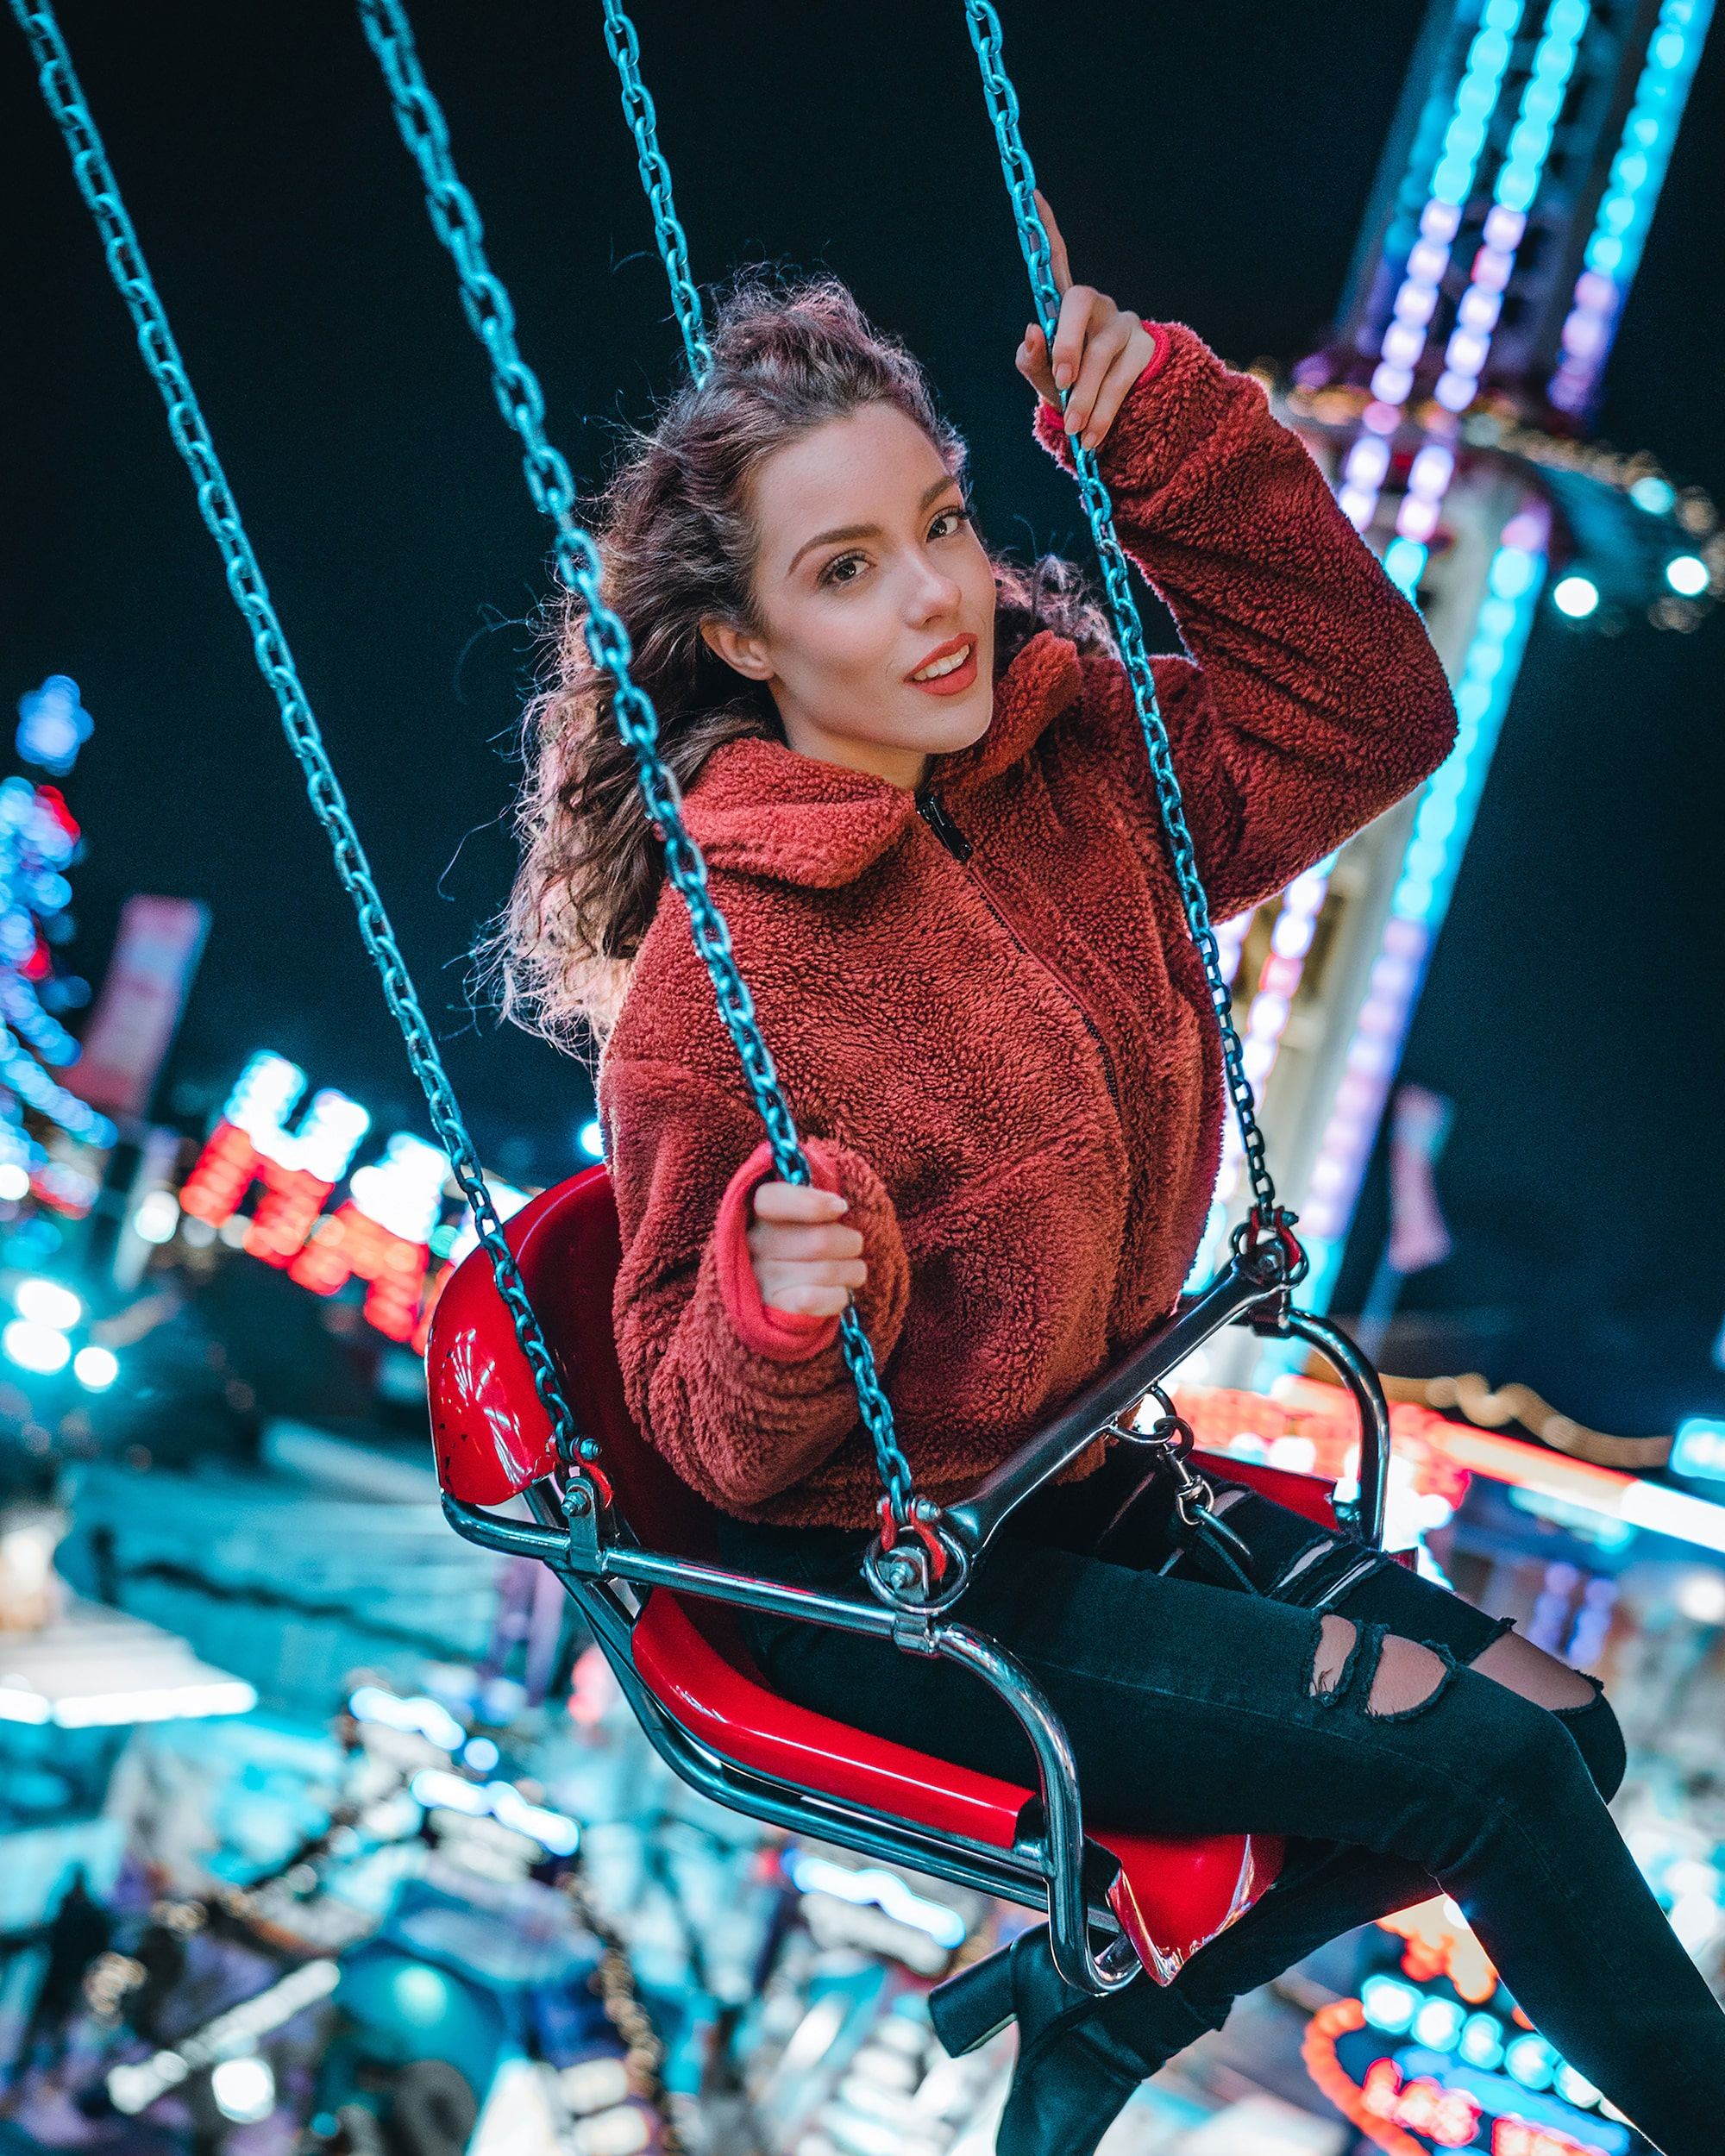 mike will sony alpha 7RIII girl on a fairground ride holding on tight as it spins round